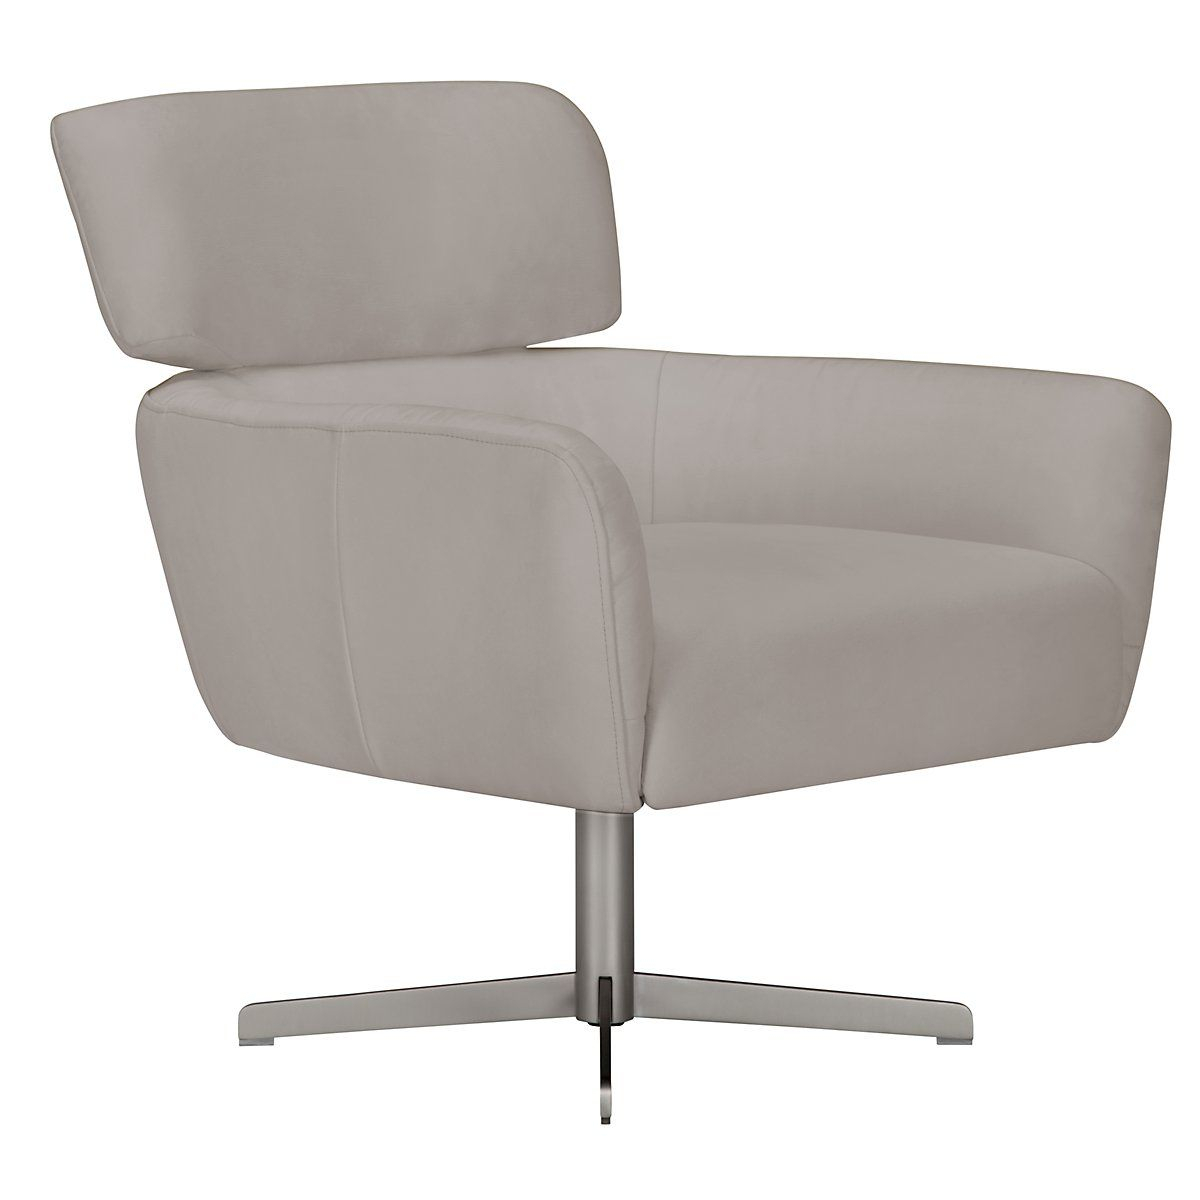 Wynn Light Gray Microfiber Swivel Accent Chair | Living Room With Regard To Aidan Ii Swivel Accent Chairs (Image 20 of 20)